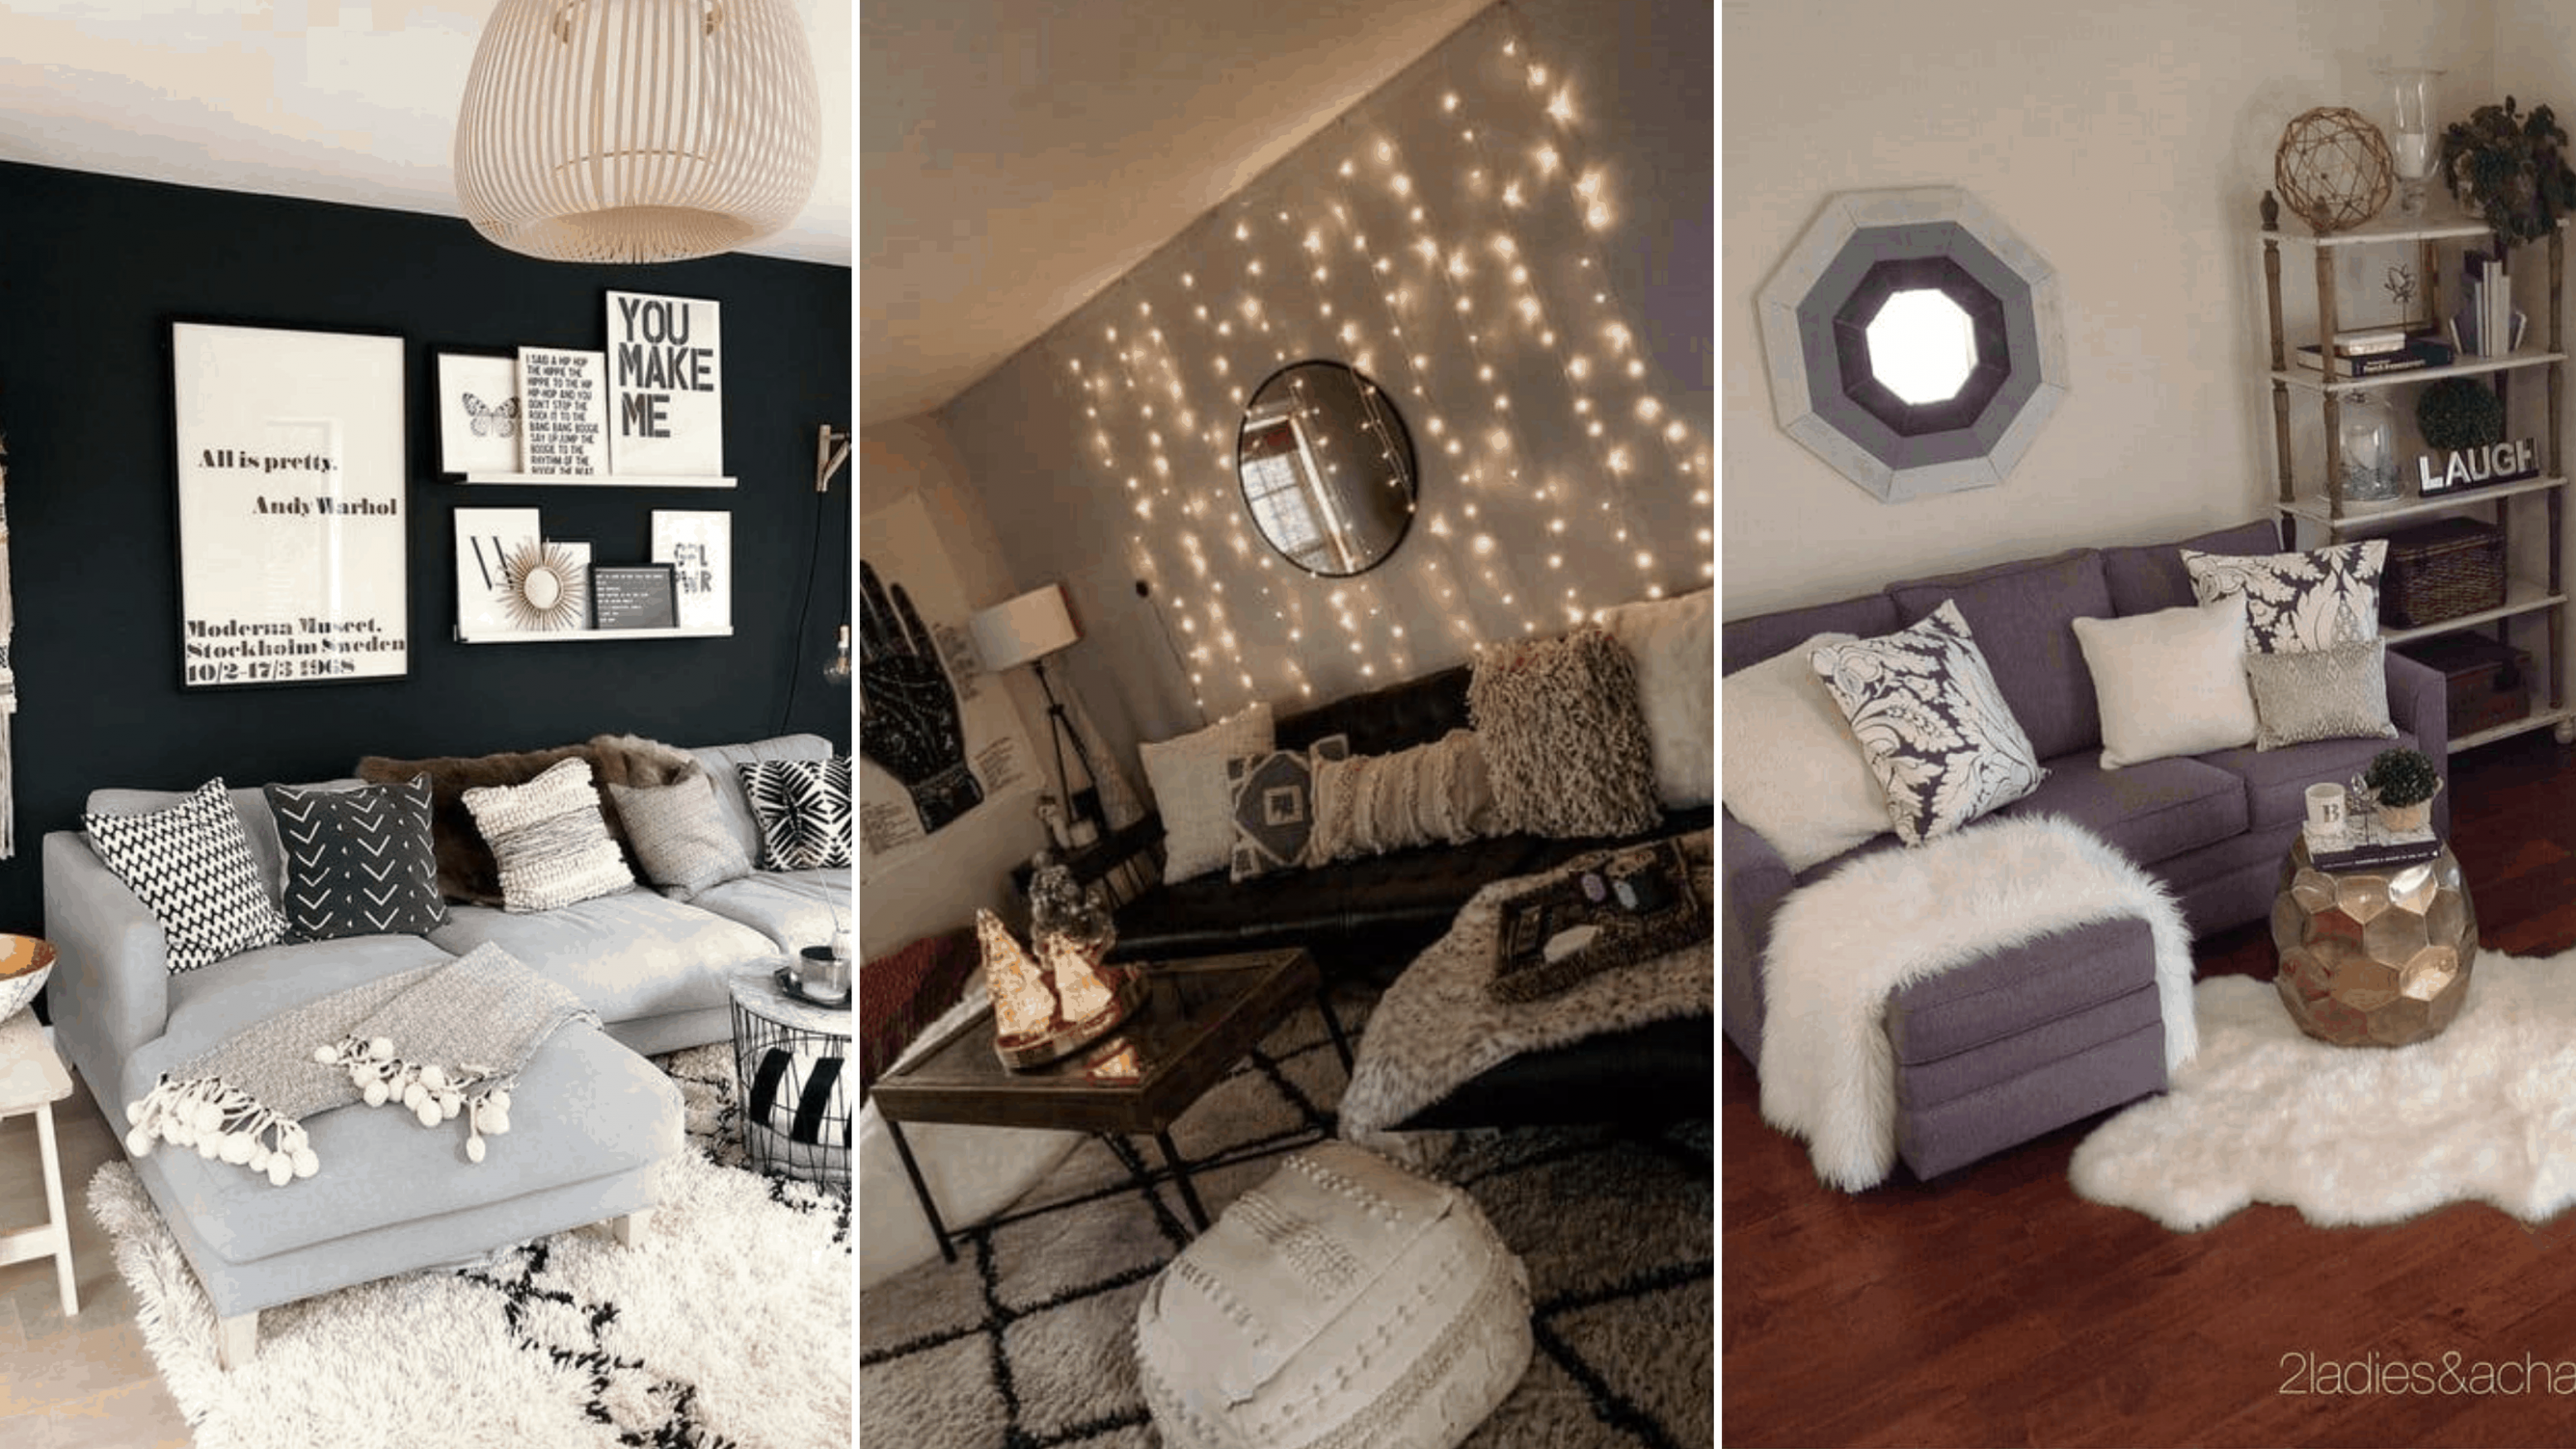 10 Genius College Apartment Decorating Ideas on a Budget - By ...